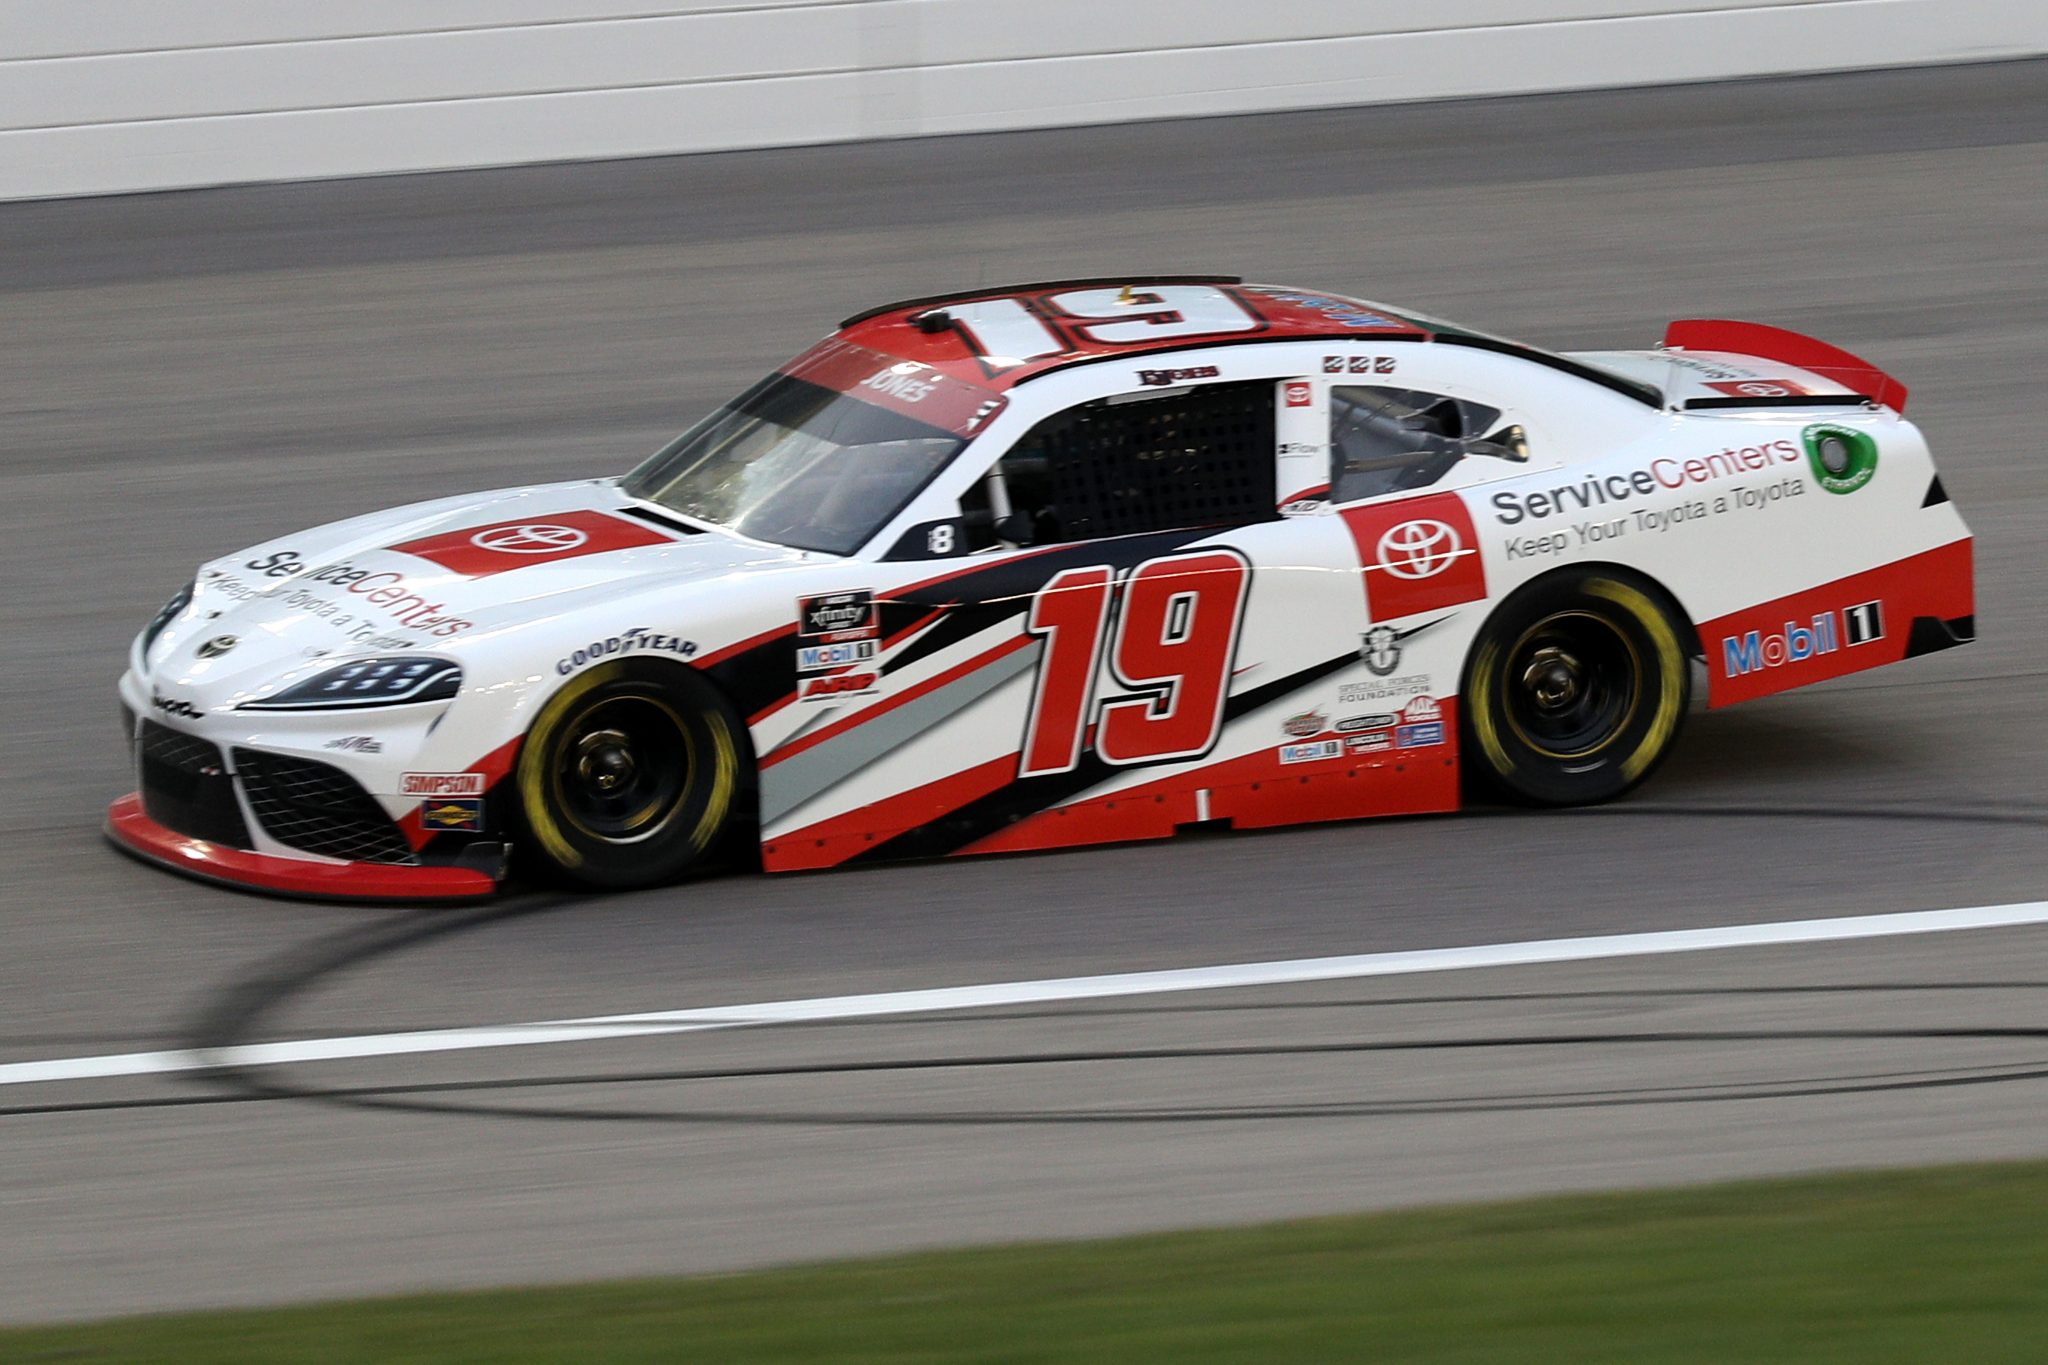 KANSAS CITY, KANSAS - OCTOBER 17: Brandon Jones, driver of the #19 Toyota Service Centers Toyota, drives during the NASCAR Xfinity Series Kansas Lottery 300 at Kansas Speedway on October 17, 2020 in Kansas City, Kansas. (Photo by Chris Graythen/Getty Images) | Getty Images